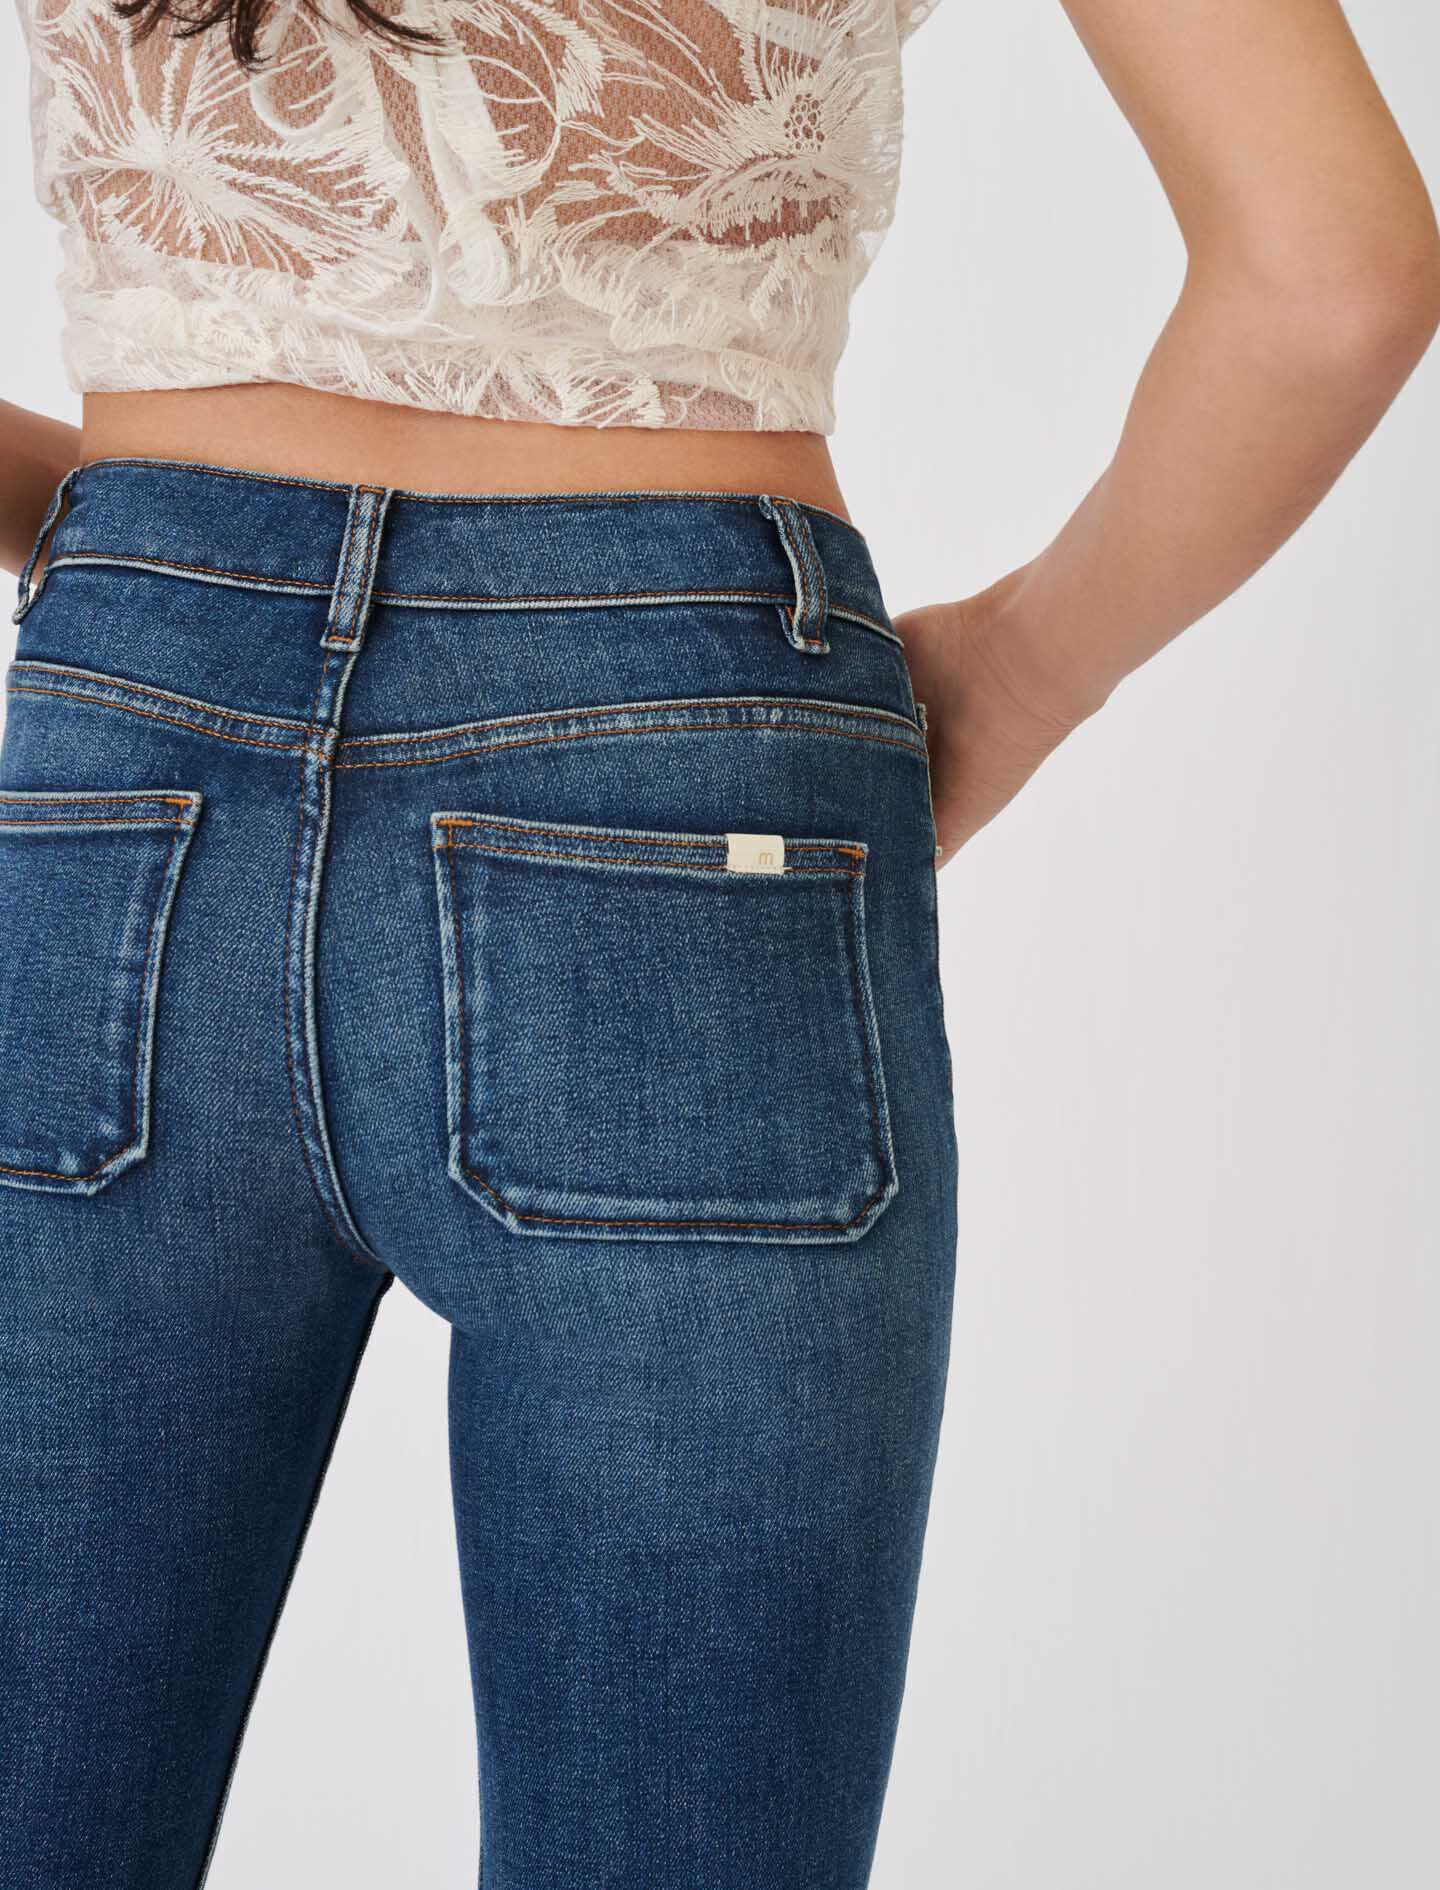 STRAIGHT CUT JEANS WITH FRINGING 5